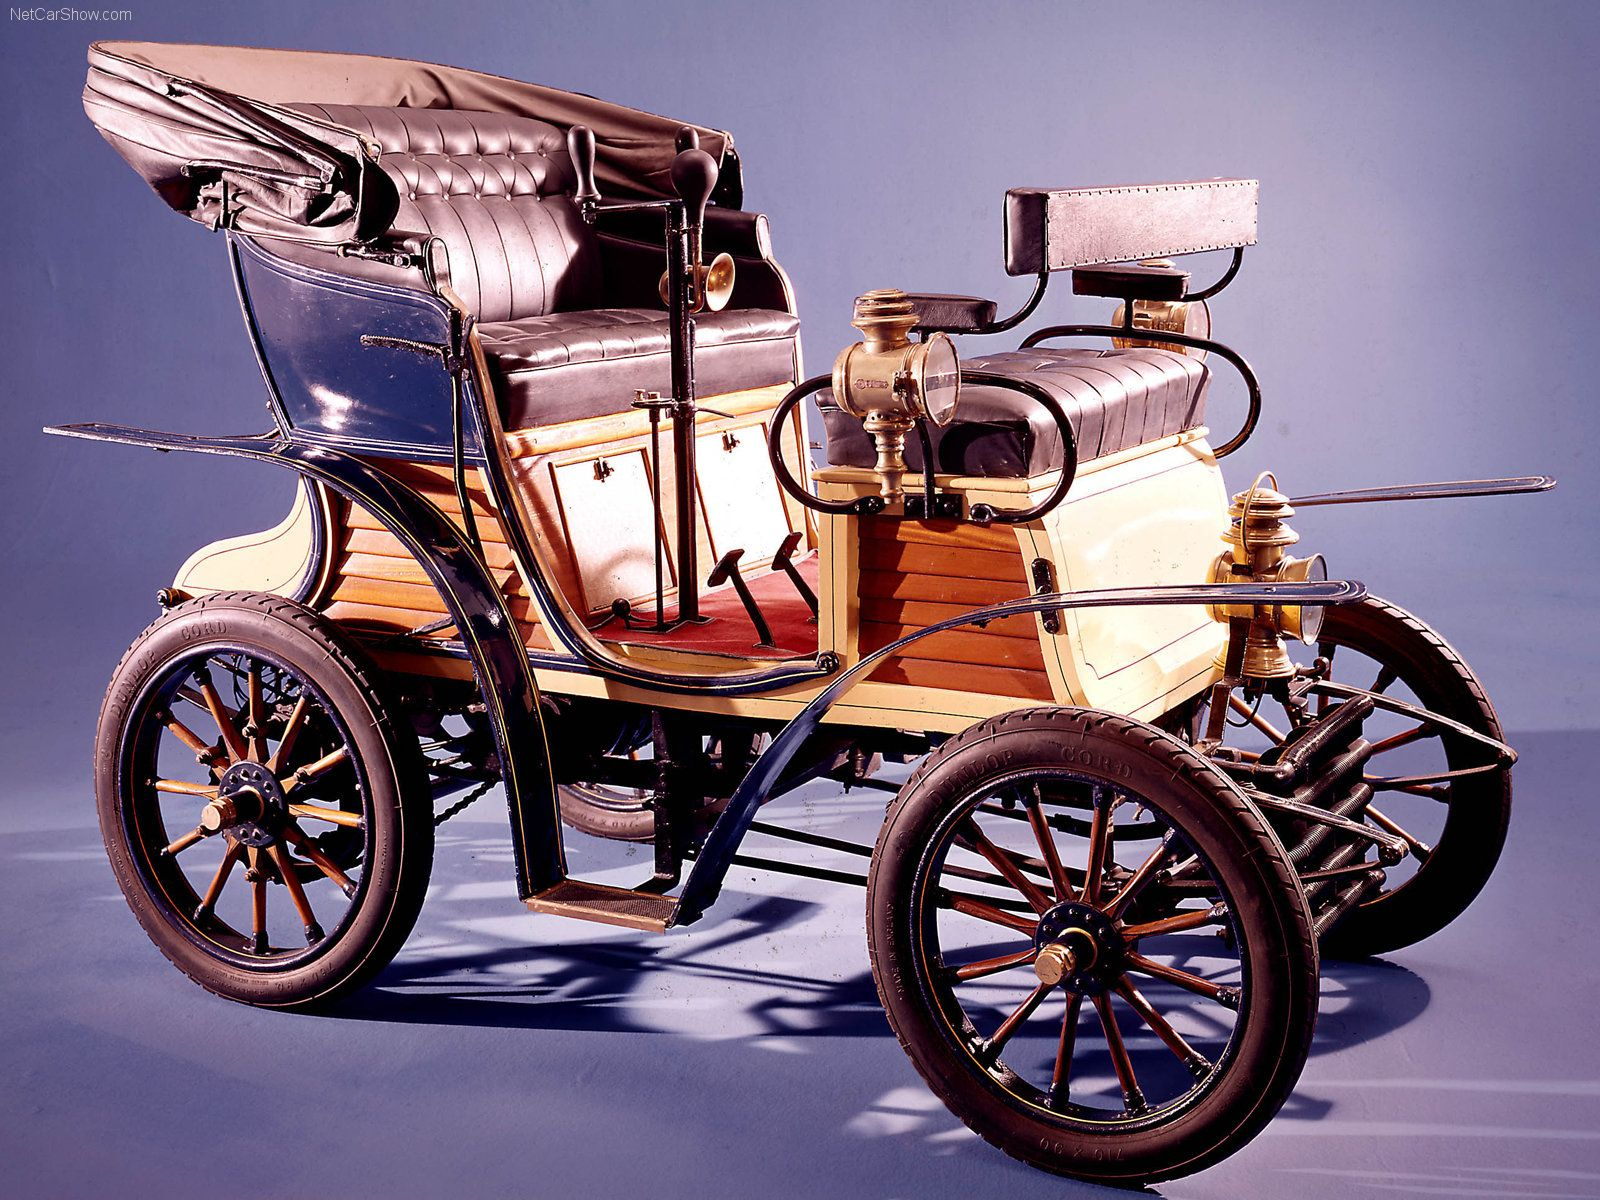 find this pin and more on antique cars by camilivia